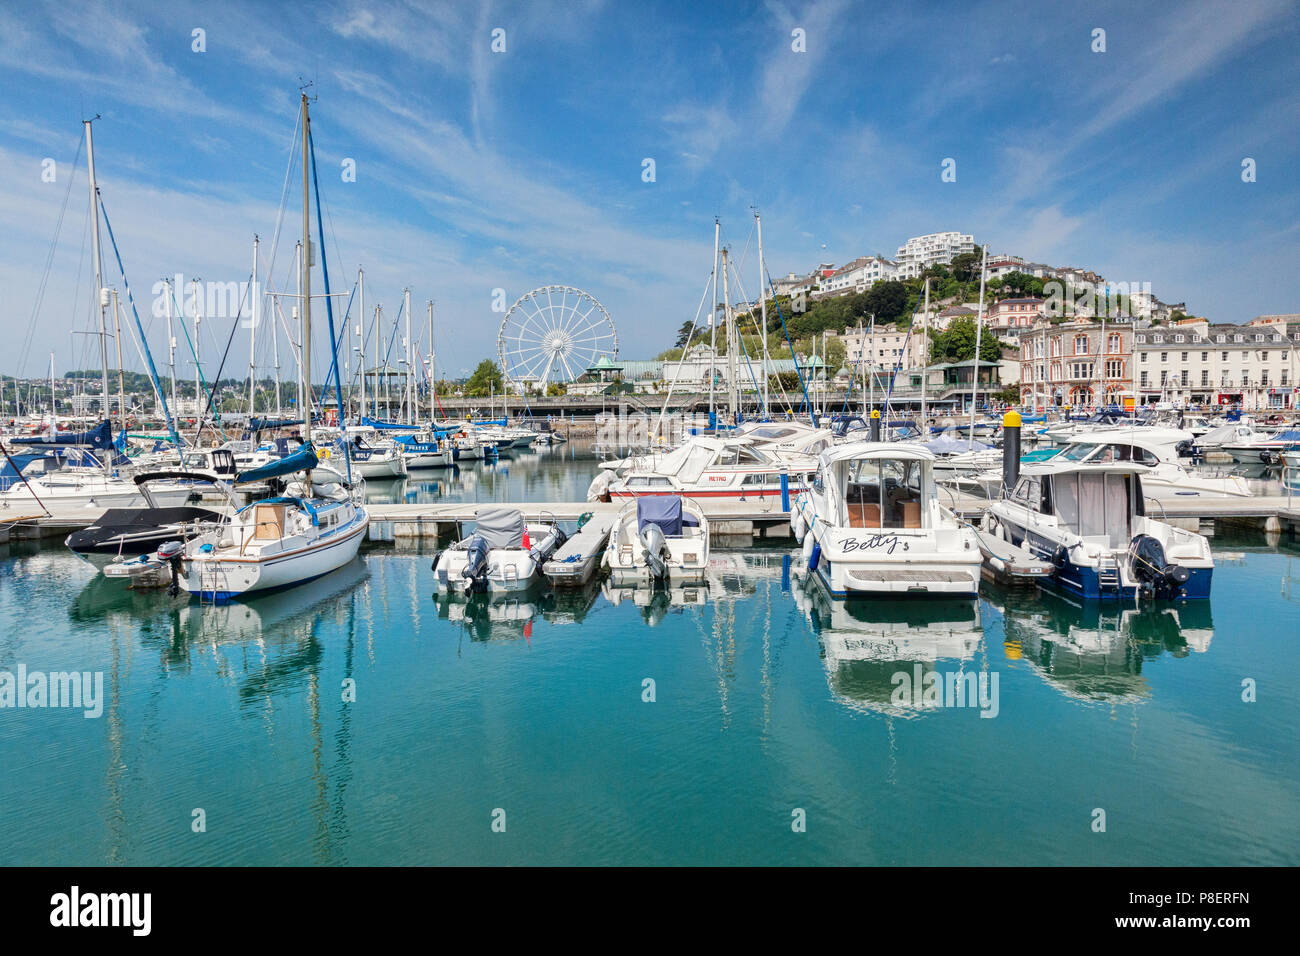 21 May 2018: Torquay, Devon, England, UK - The marina and town on a sunny spring day. - Stock Image